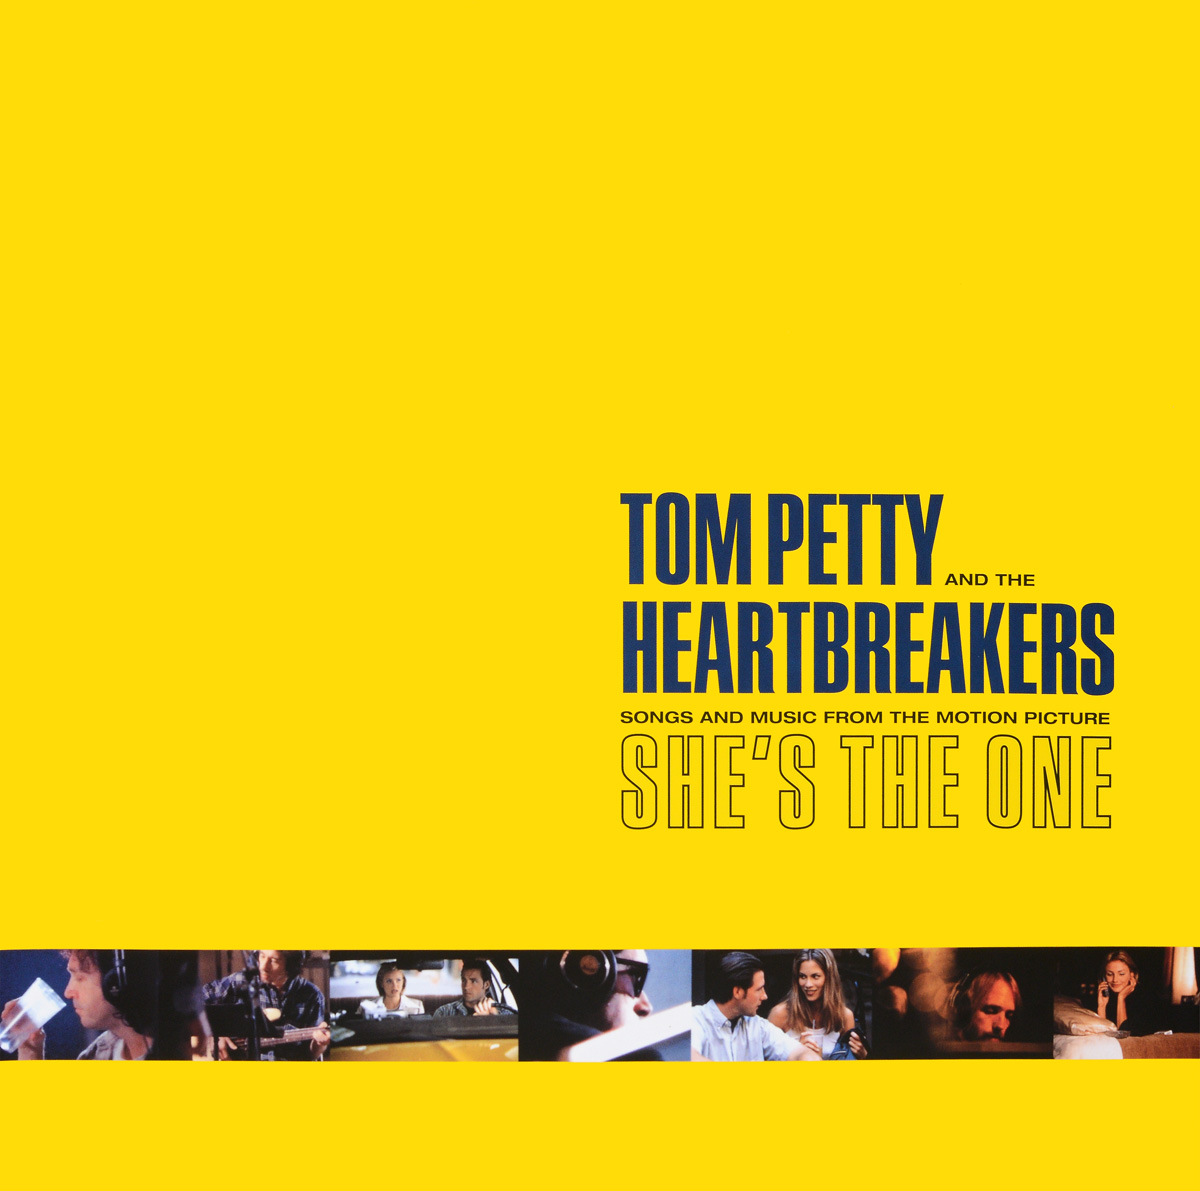 Tom Petty And The Heartbreakers Tom Petty & Heartbreakers. Songs And Music From The Motion Picture She's The One (LP) the fast and the furious music from and inspired by the motion picture